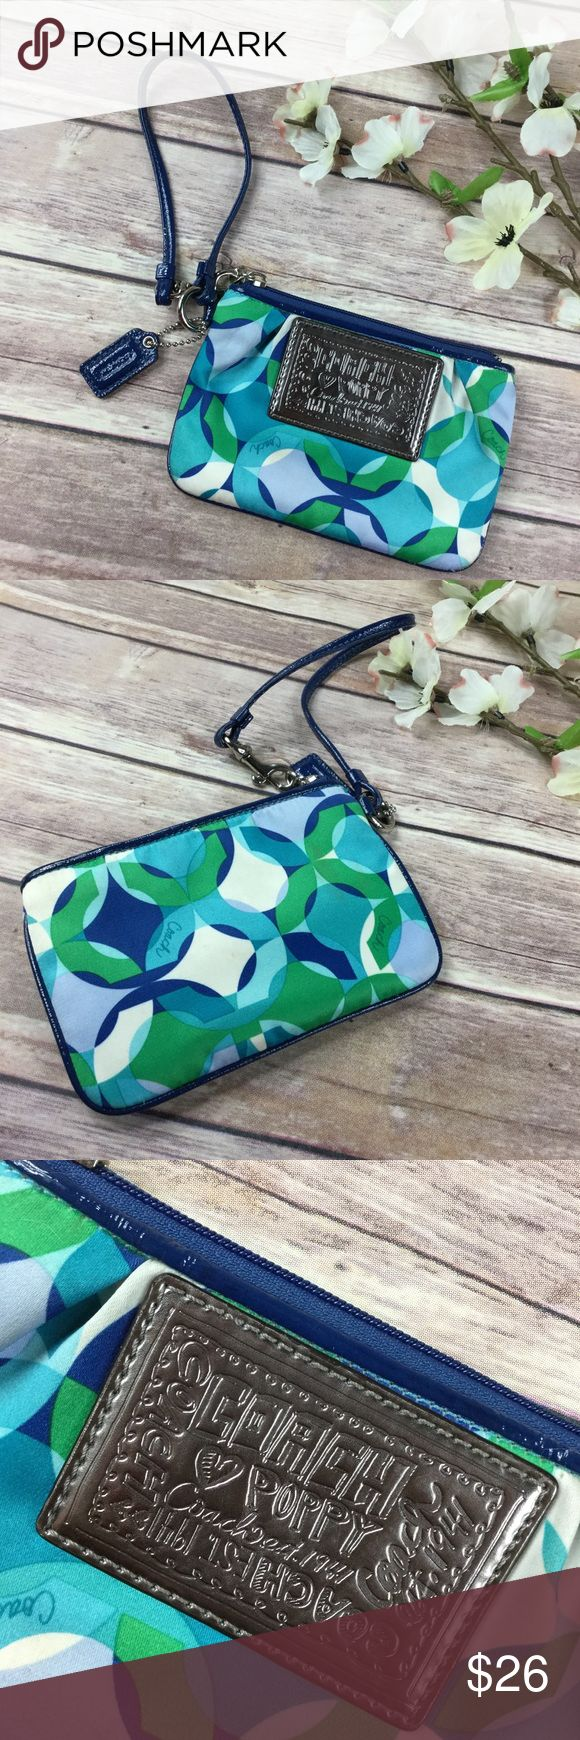 Coach Poppy blue small wristlet Cute little Coach Poppy wristlet. Blue green exterior. Has been used a couple times and has some marks in various spots not very noticeable. Save instantly when bundled with any other item! Coach Bags Clutches & Wristlets